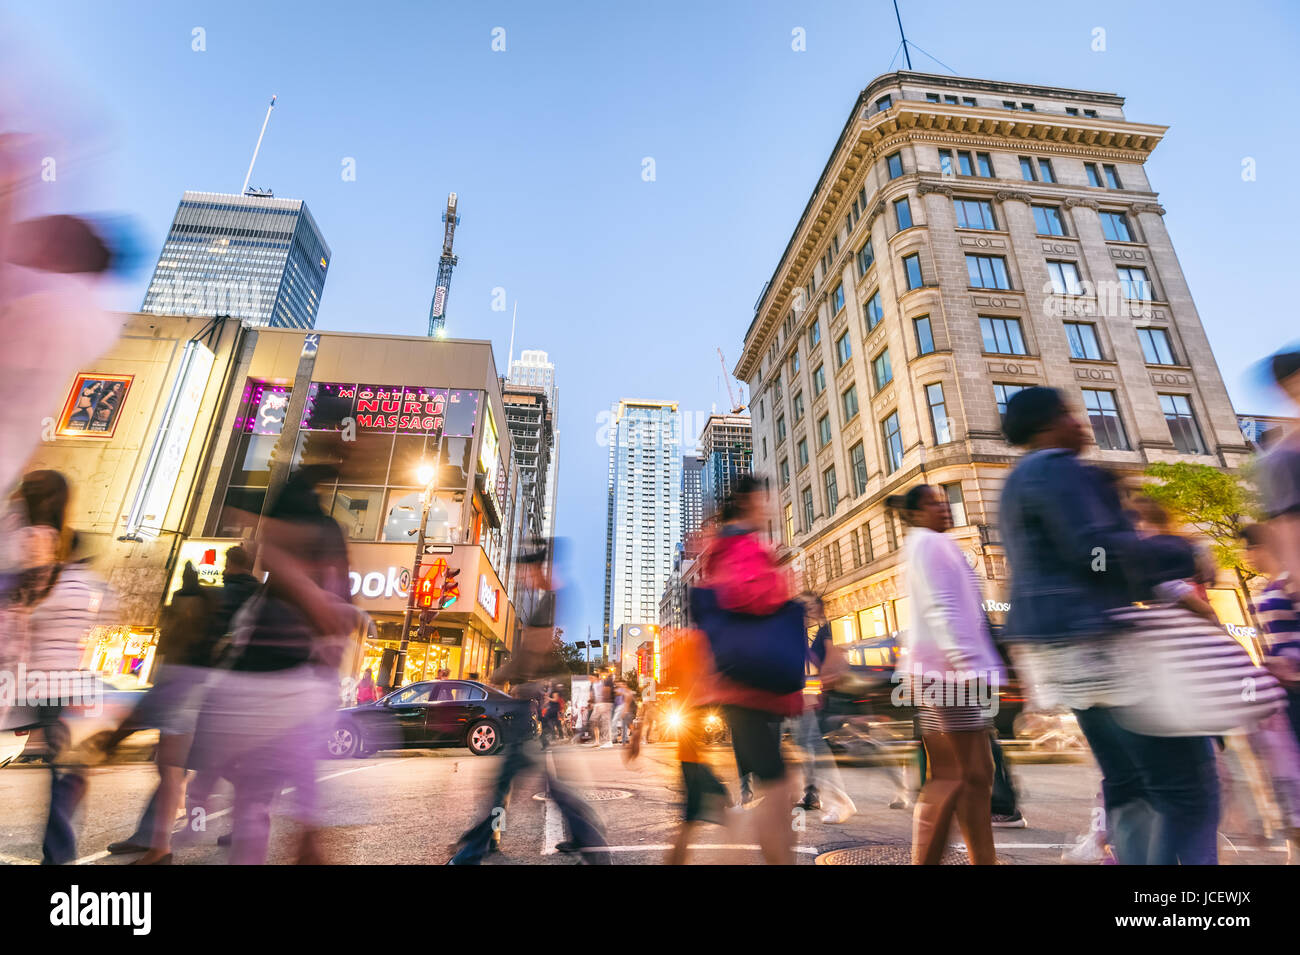 Montreal, 9 June 2017: Motion blur image of people walking on ste Catherine street during grand prix weekend. - Stock Image